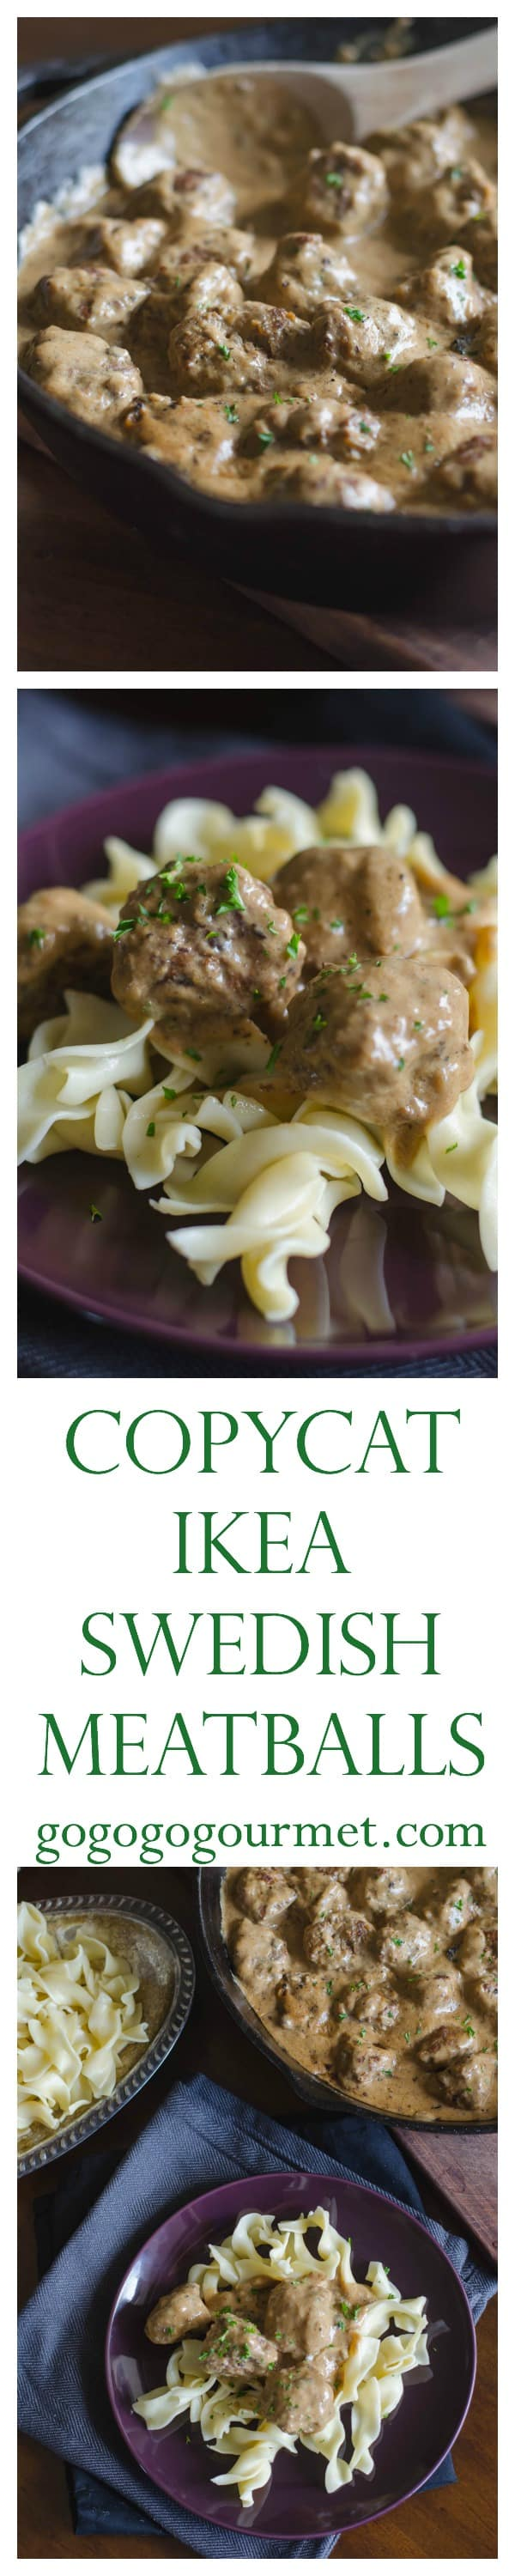 This Ikea Swedish Meatballs recipe is a dead ringer for the tender little meatballs in delicious gravy at Ikea. They might be even better at home! |